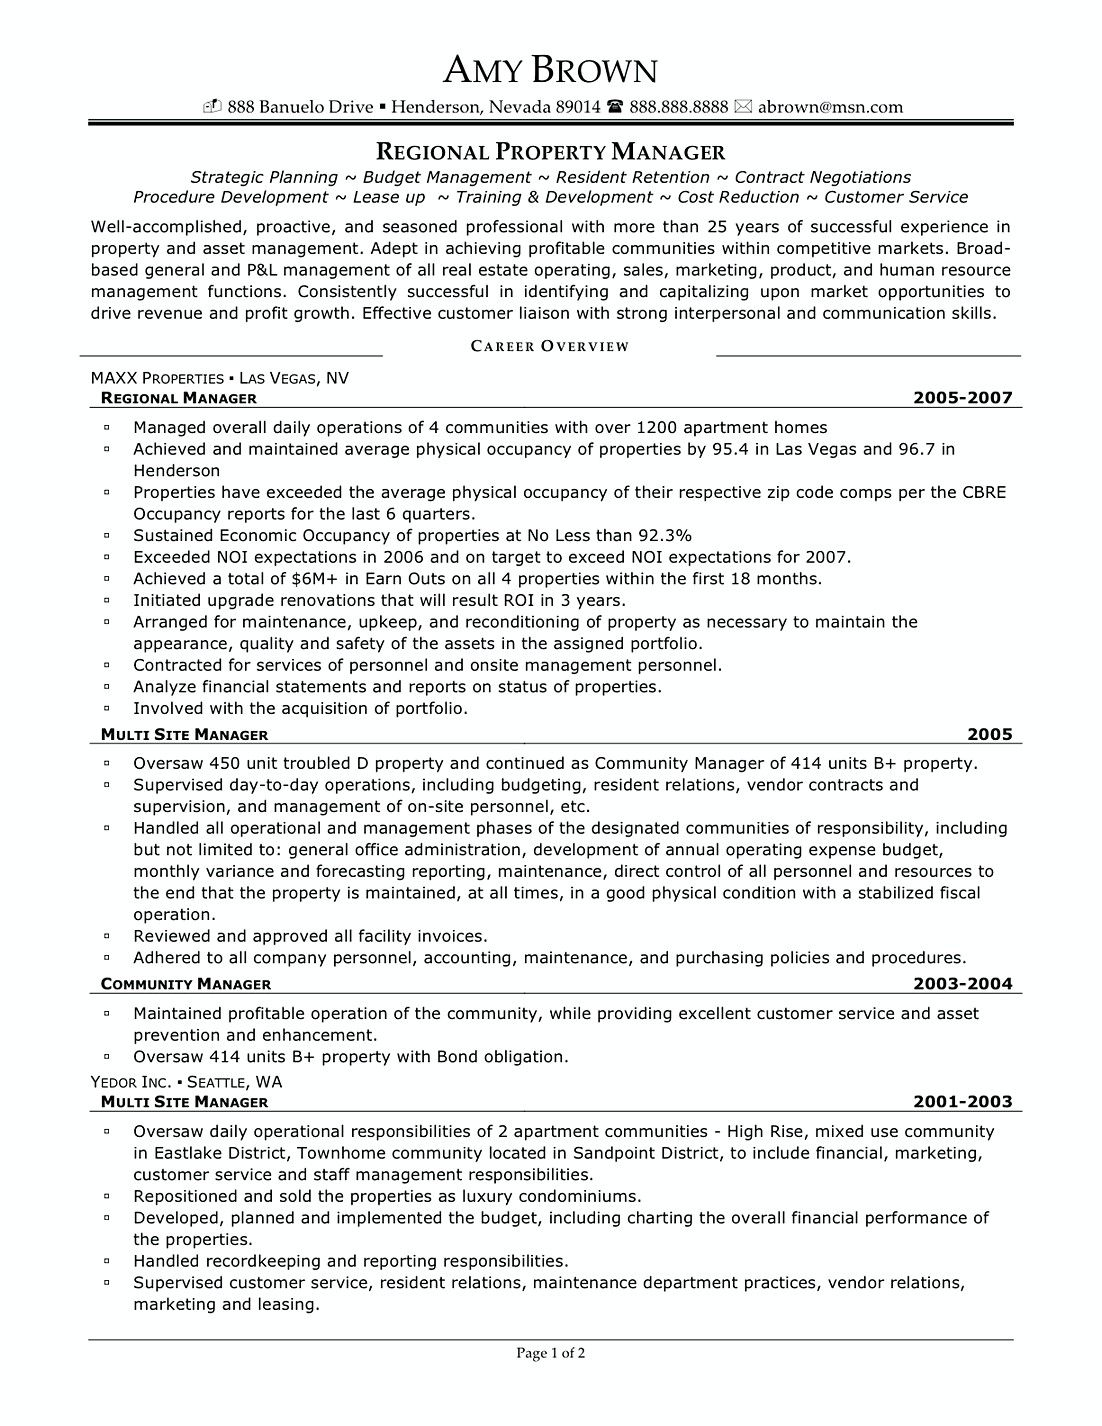 Production Supervisor Resume Regional Property Manager Resume Samples  Commercial Property